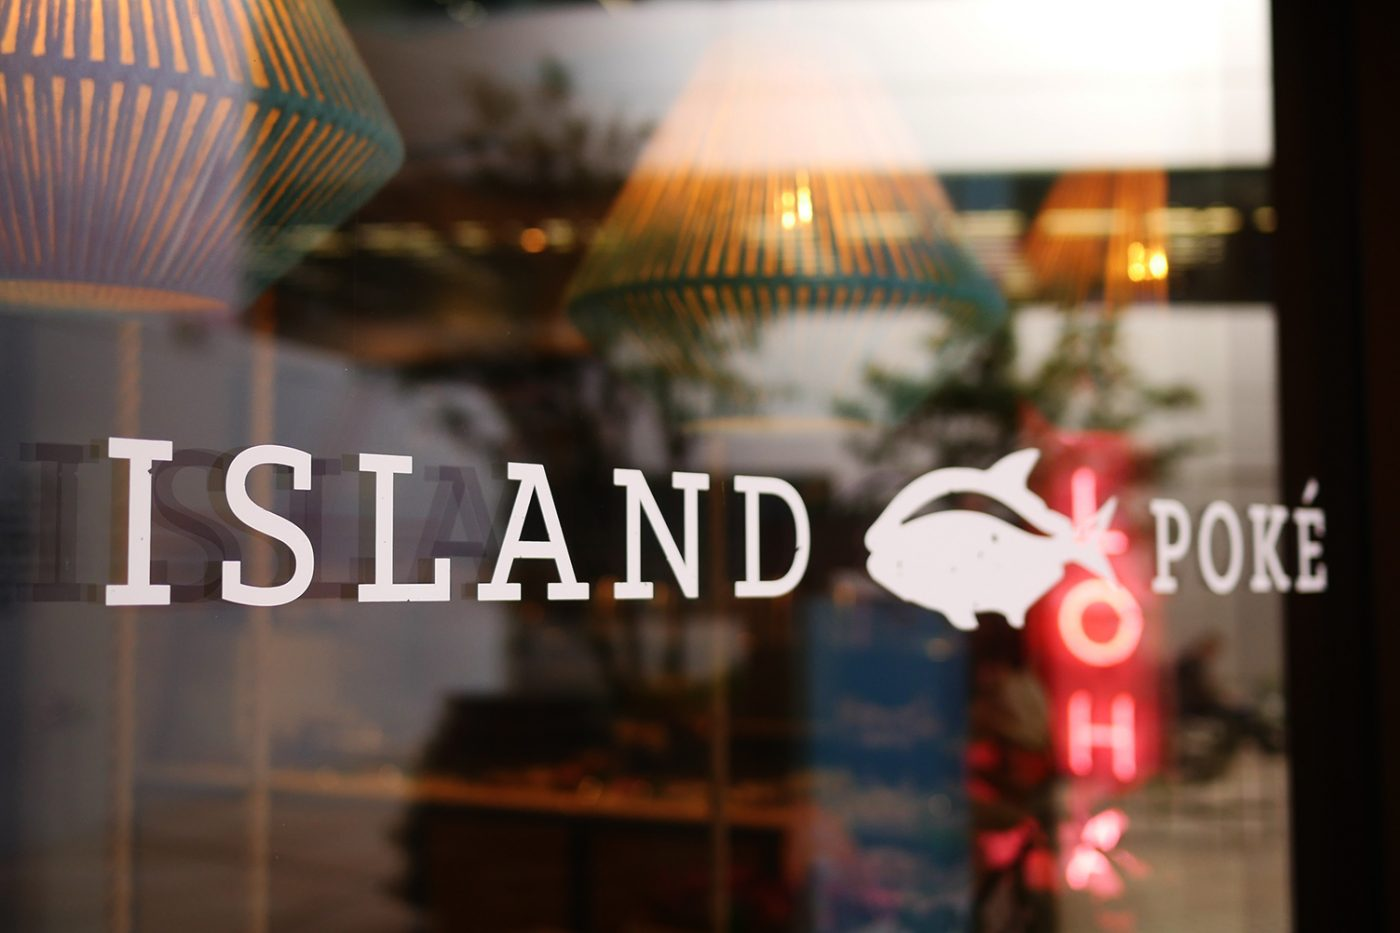 island-poke-decal-logo-window-sign-graphic-design-london-broadgate-hawaiian